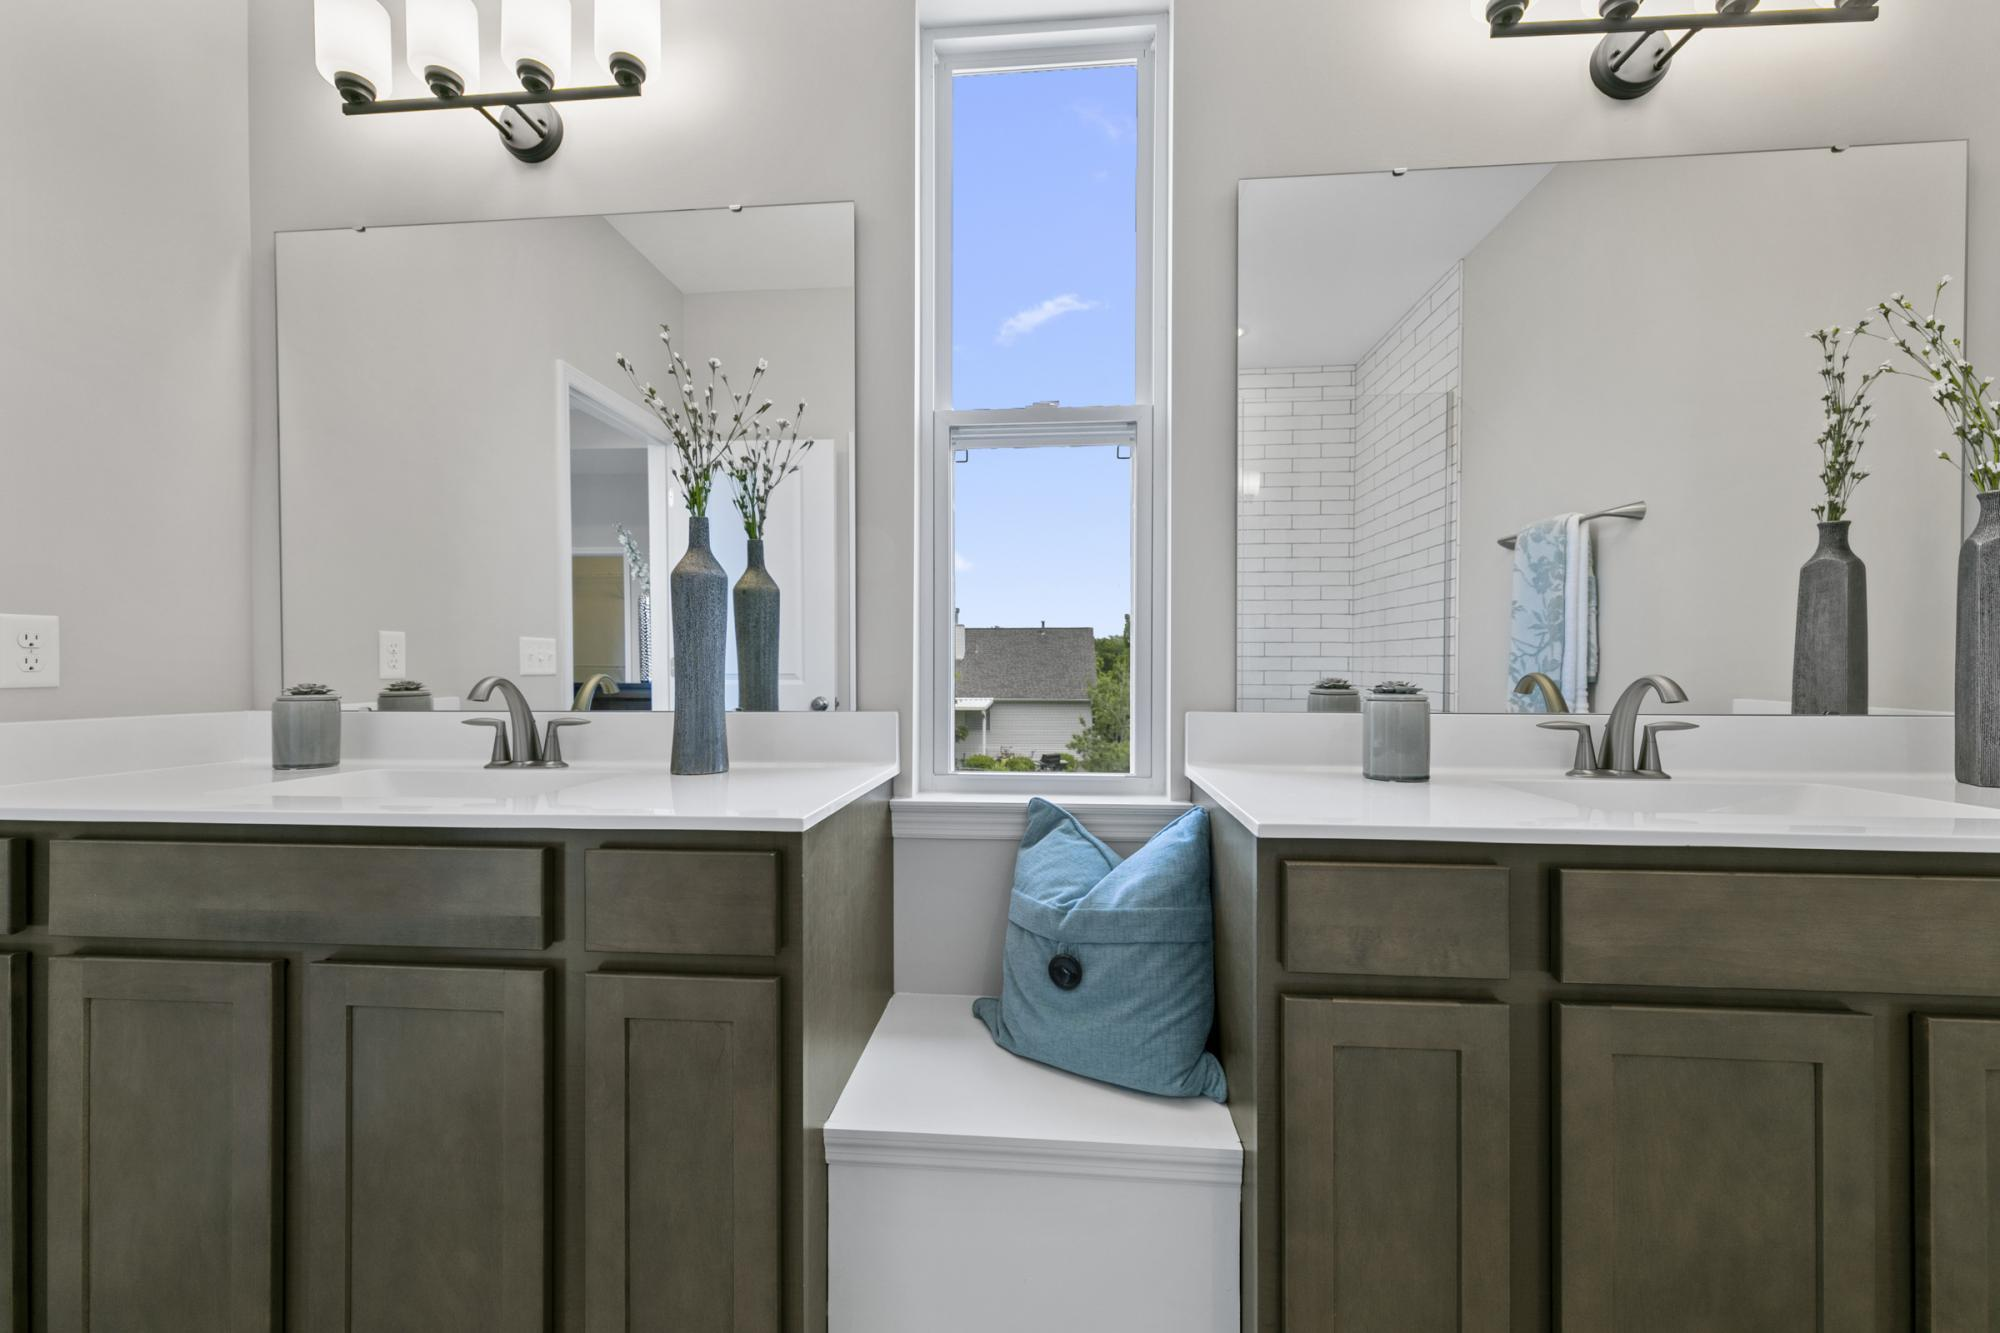 Bathroom featured in the Hemingway By McKelvey Homes in St. Louis, MO